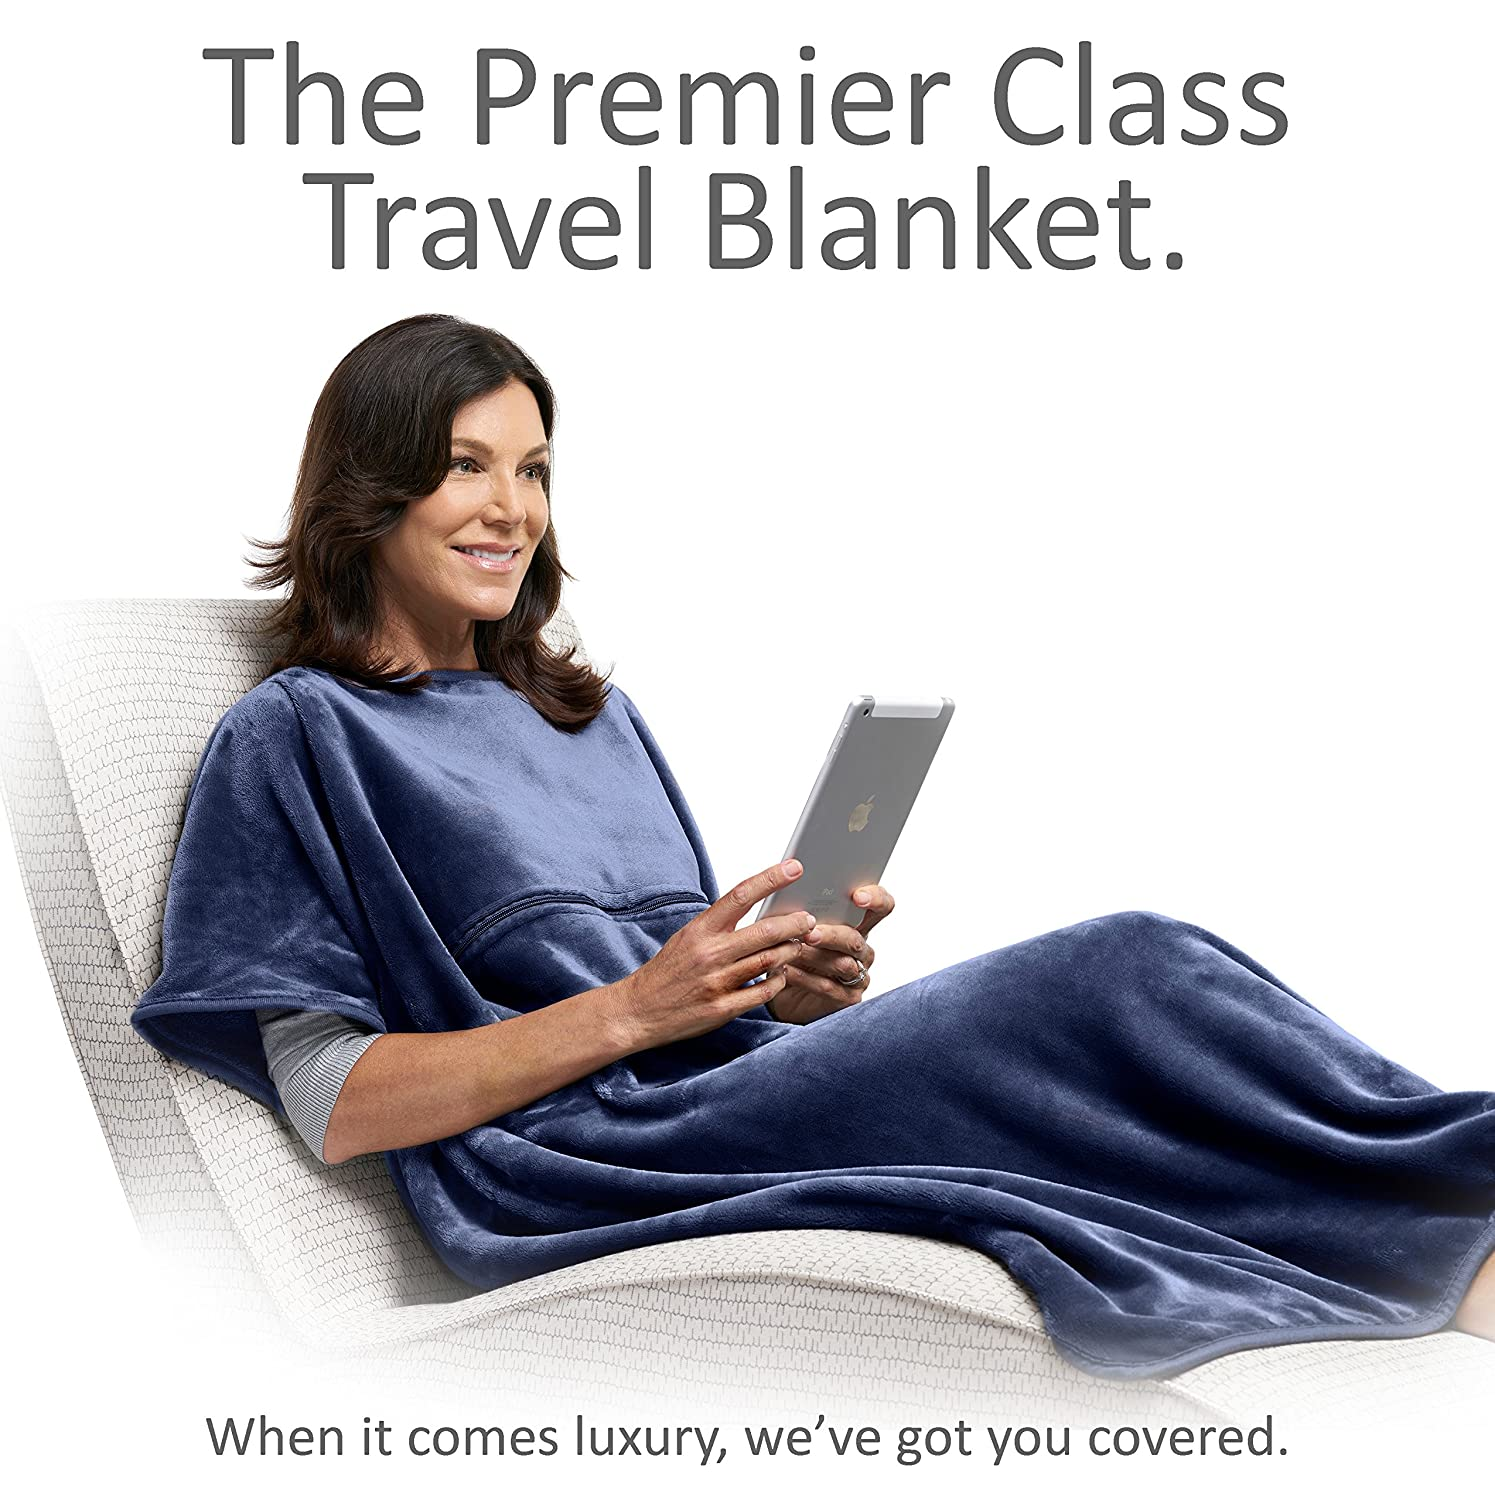 Travelrest 4-in-1 Premier Class Travel Blanket with Zipped Pocket - Soft & Luxurious - Also Use As Lumbar Support or Neck Pillow (Includes Stuff Sack) TB222NVY